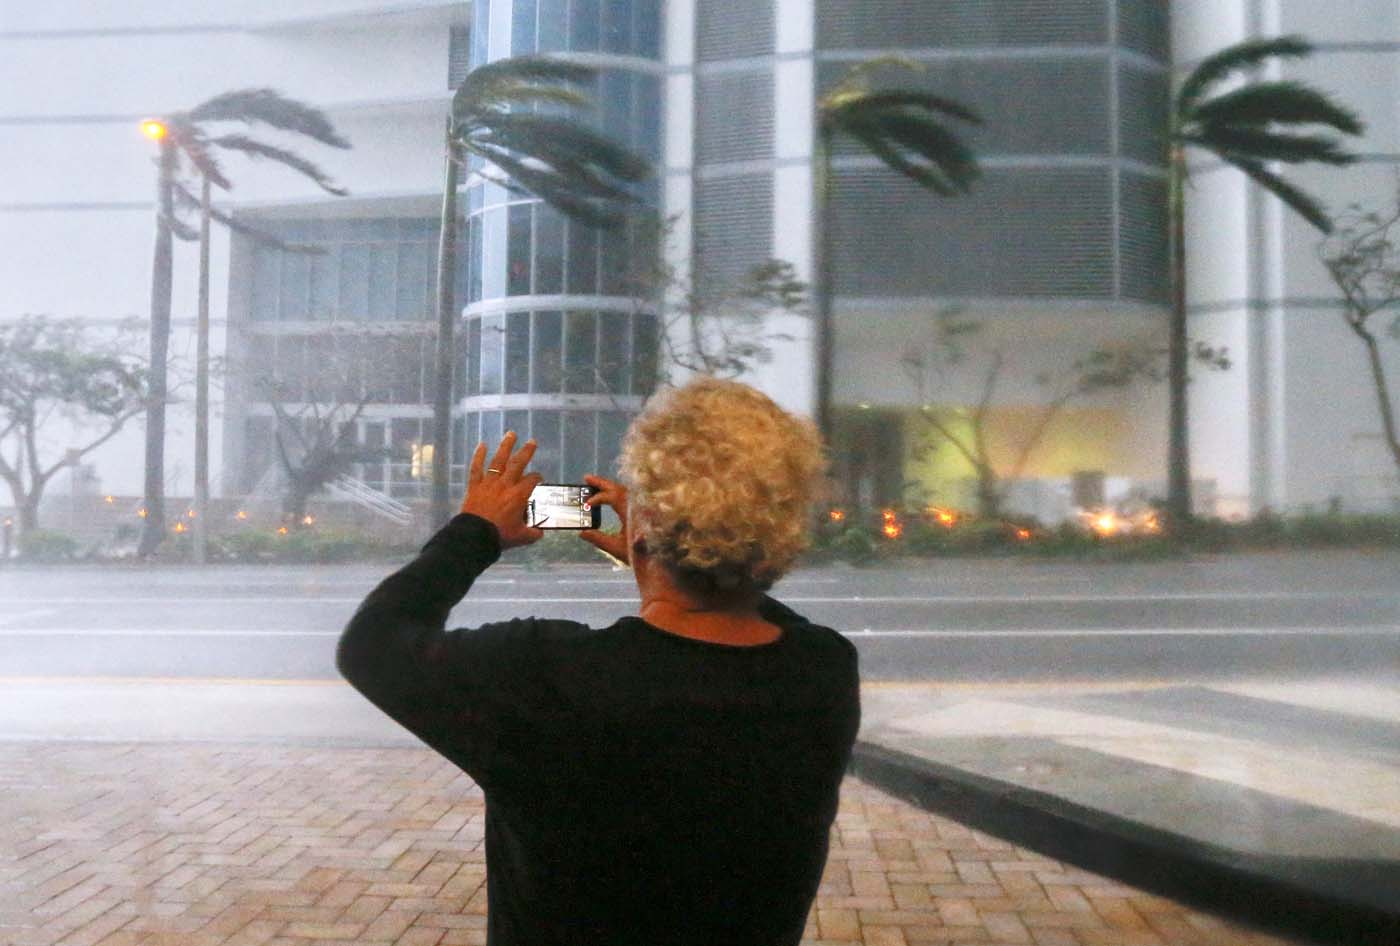 ELX01. Miami (United States), 10/09/2017.- A person photographs the fierce winds with his mobile phone as the full effects of Hurricane Irma strike in Miami, Florida, USA, 10 September 2017. Many areas are under mandatory evacuation orders as Irma approaches Florida. The National Hurricane Center has rated Irma as a Category 4 storm as the eye crosses the lower Florida Keys. (Estados Unidos) EFE/EPA/ERIK S. LESSER